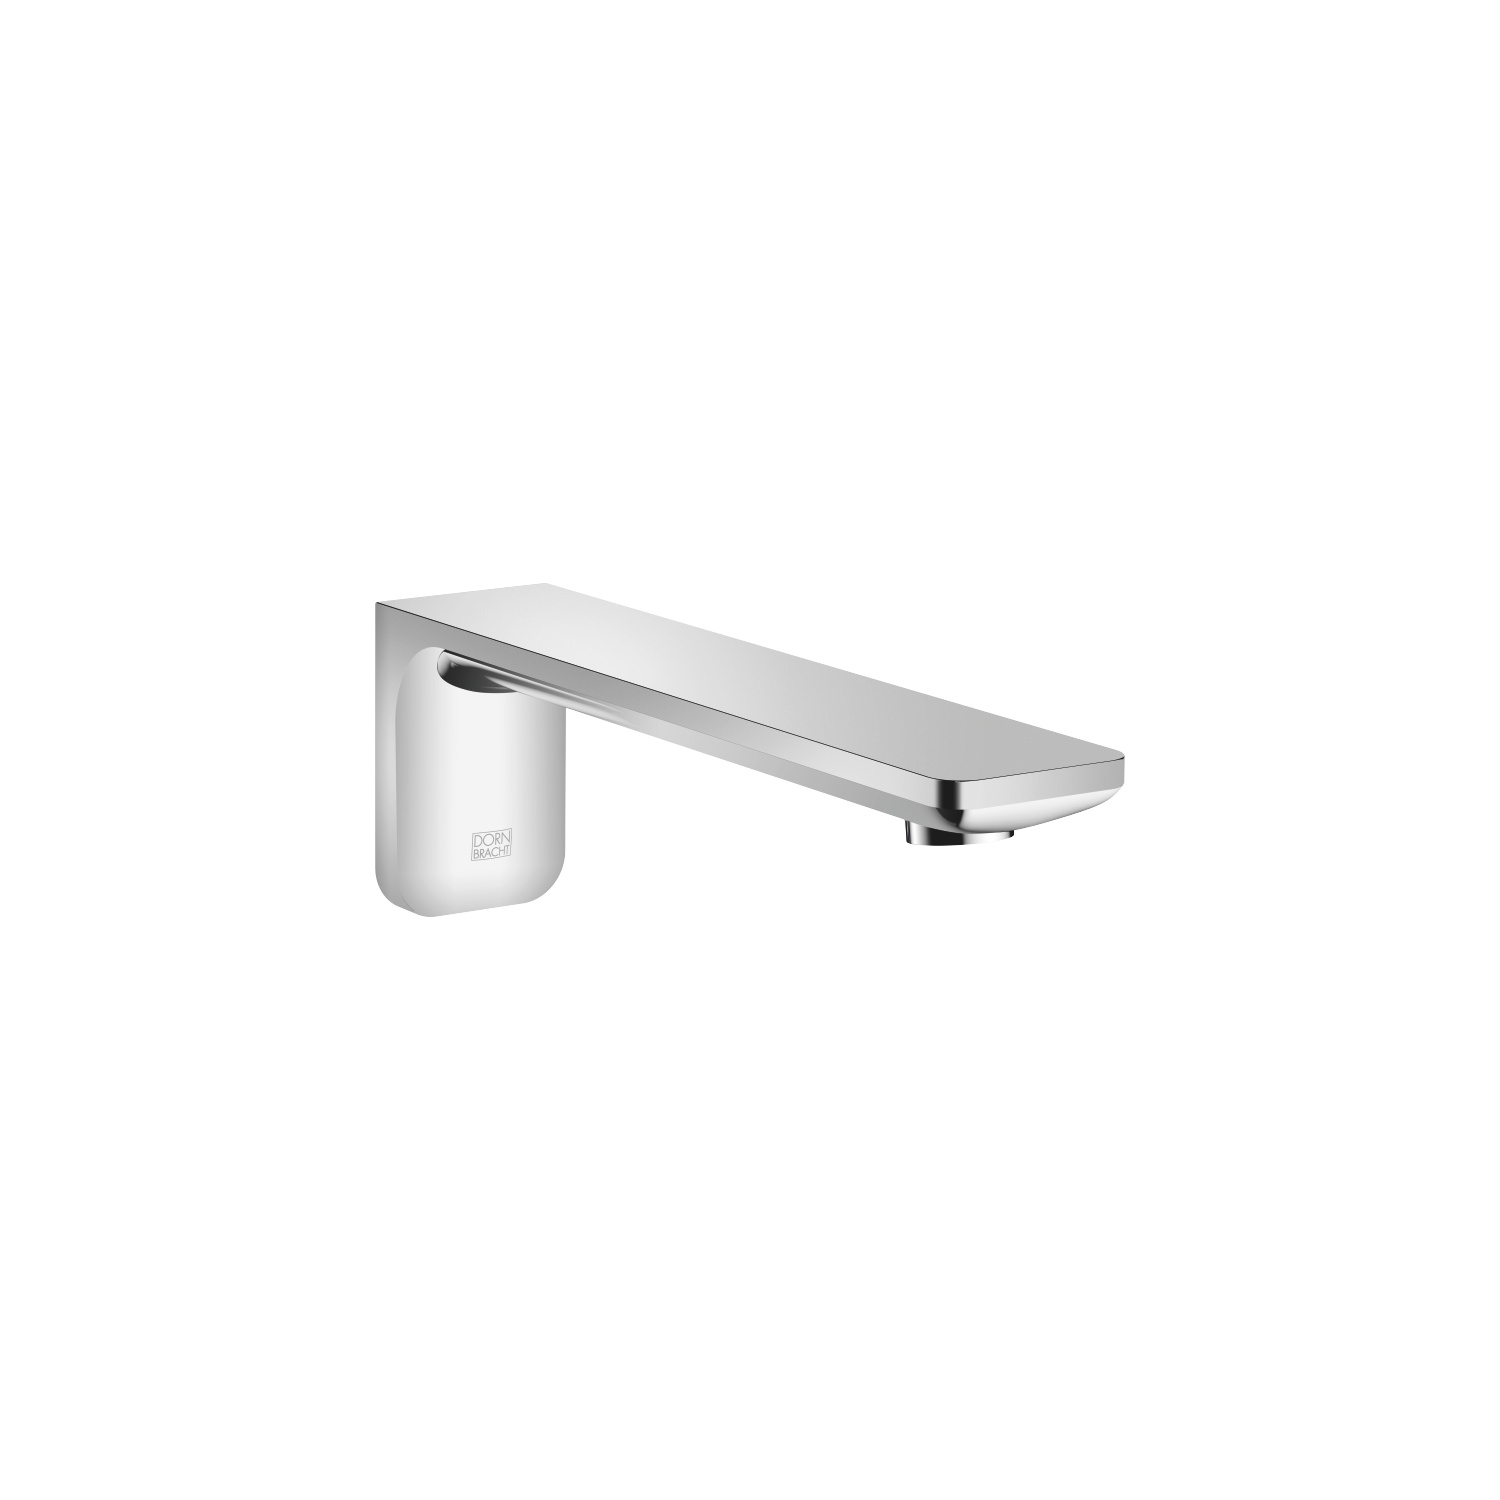 bath spout for wall mounting - polished chrome - 13 801 845-00